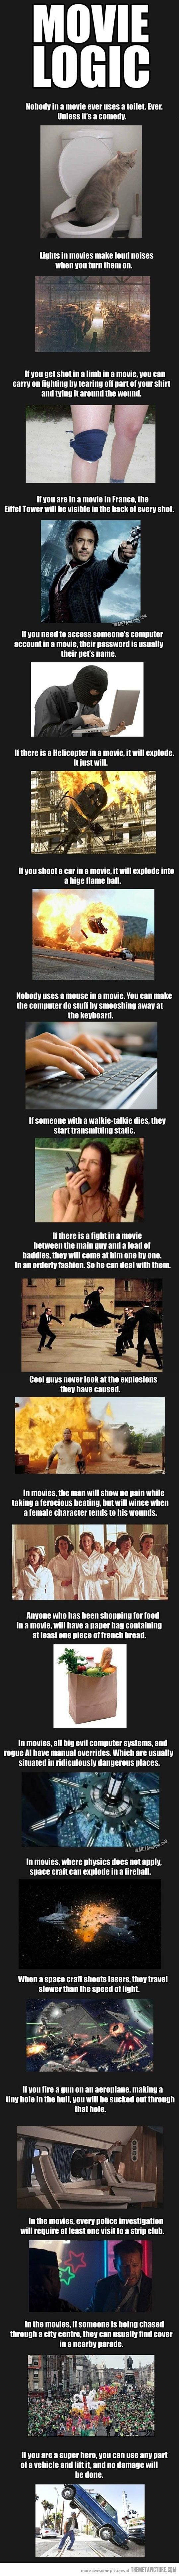 Movie logic… I'm going to make a story that defies all of these. ALL of them. Except maybe the first one.